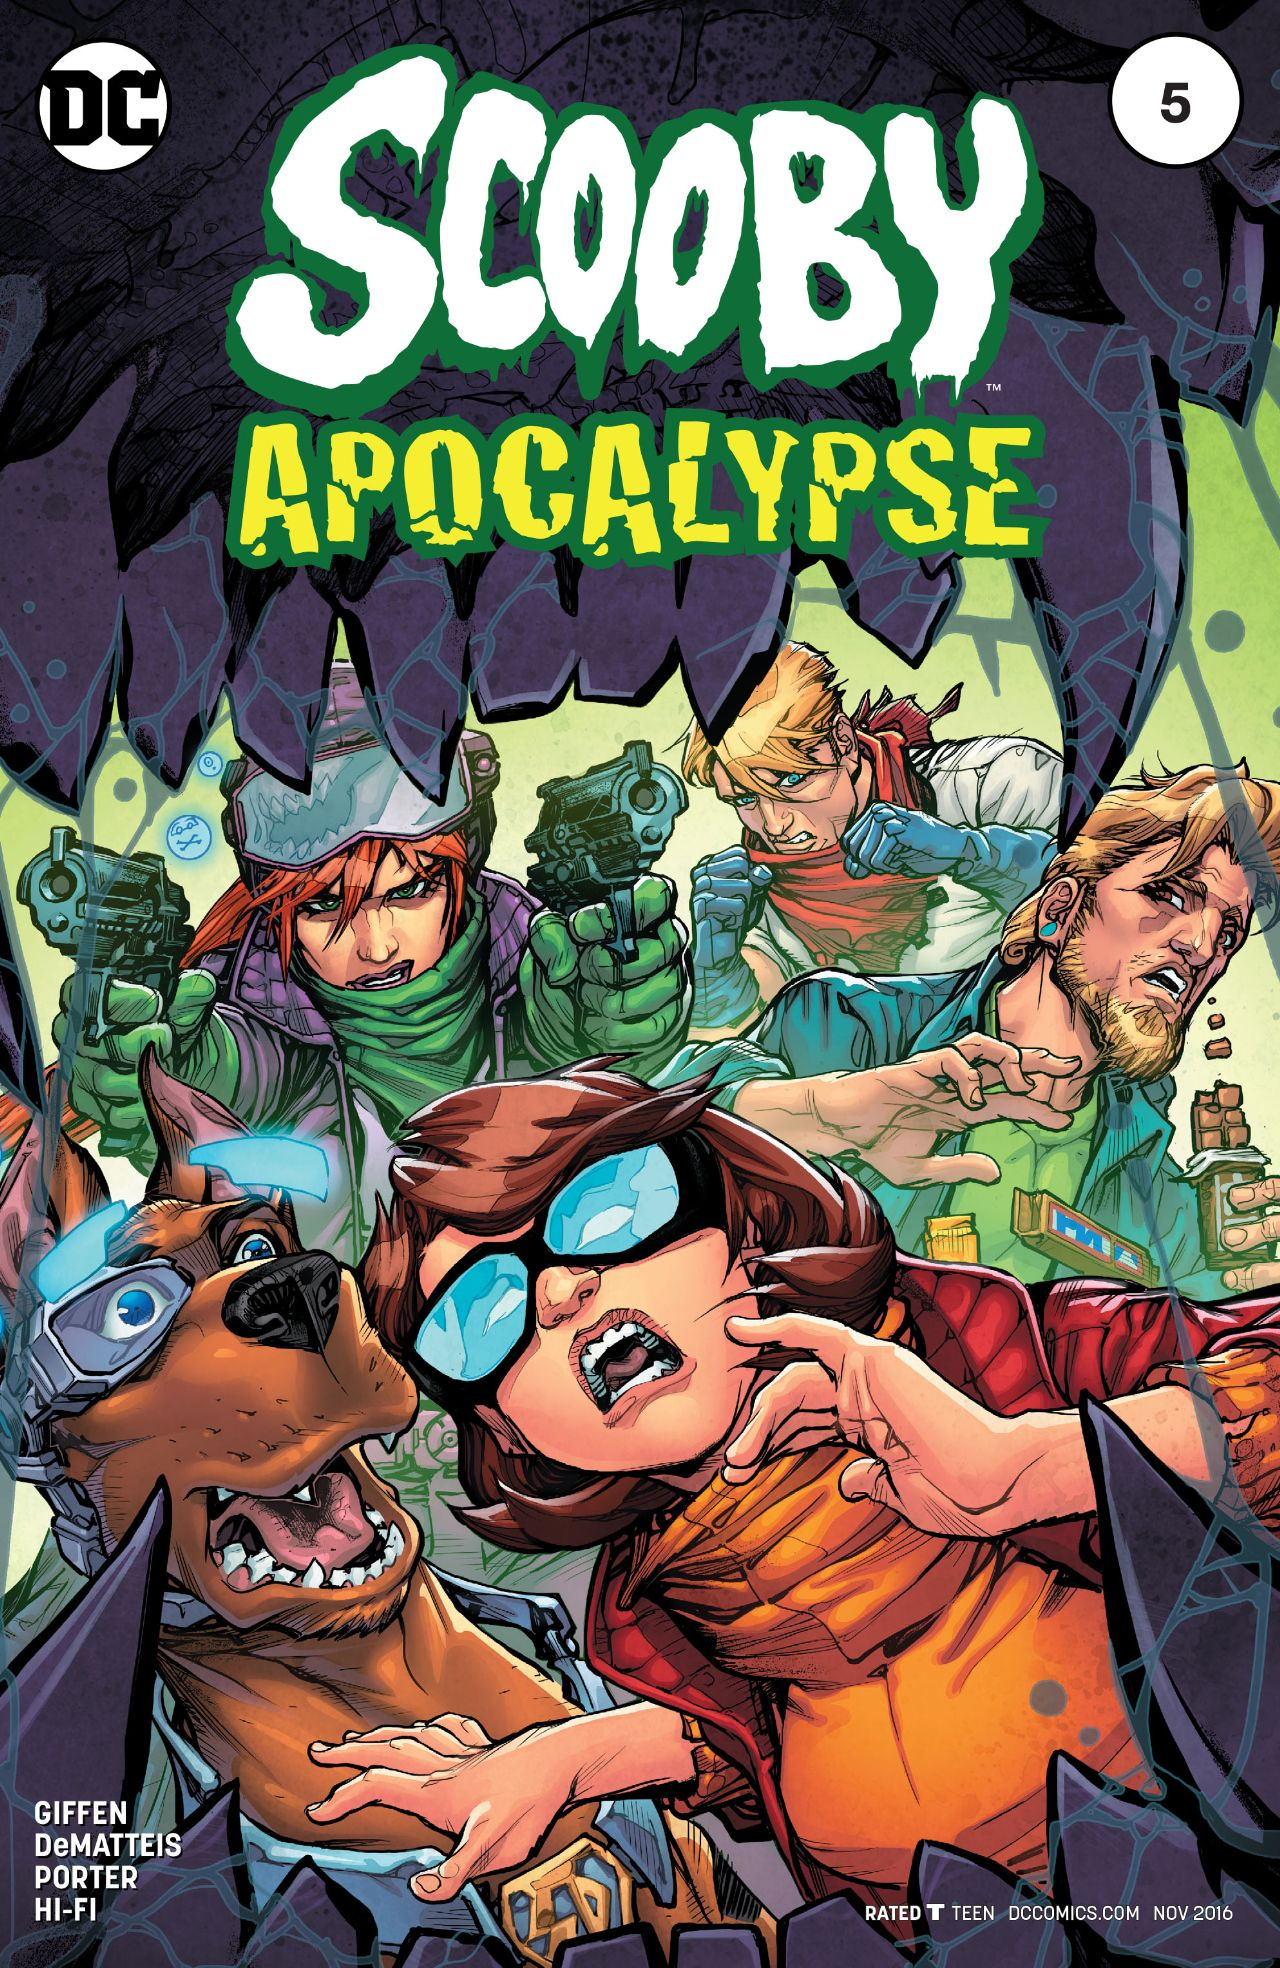 Scooby Apocalypse Vol 1 5